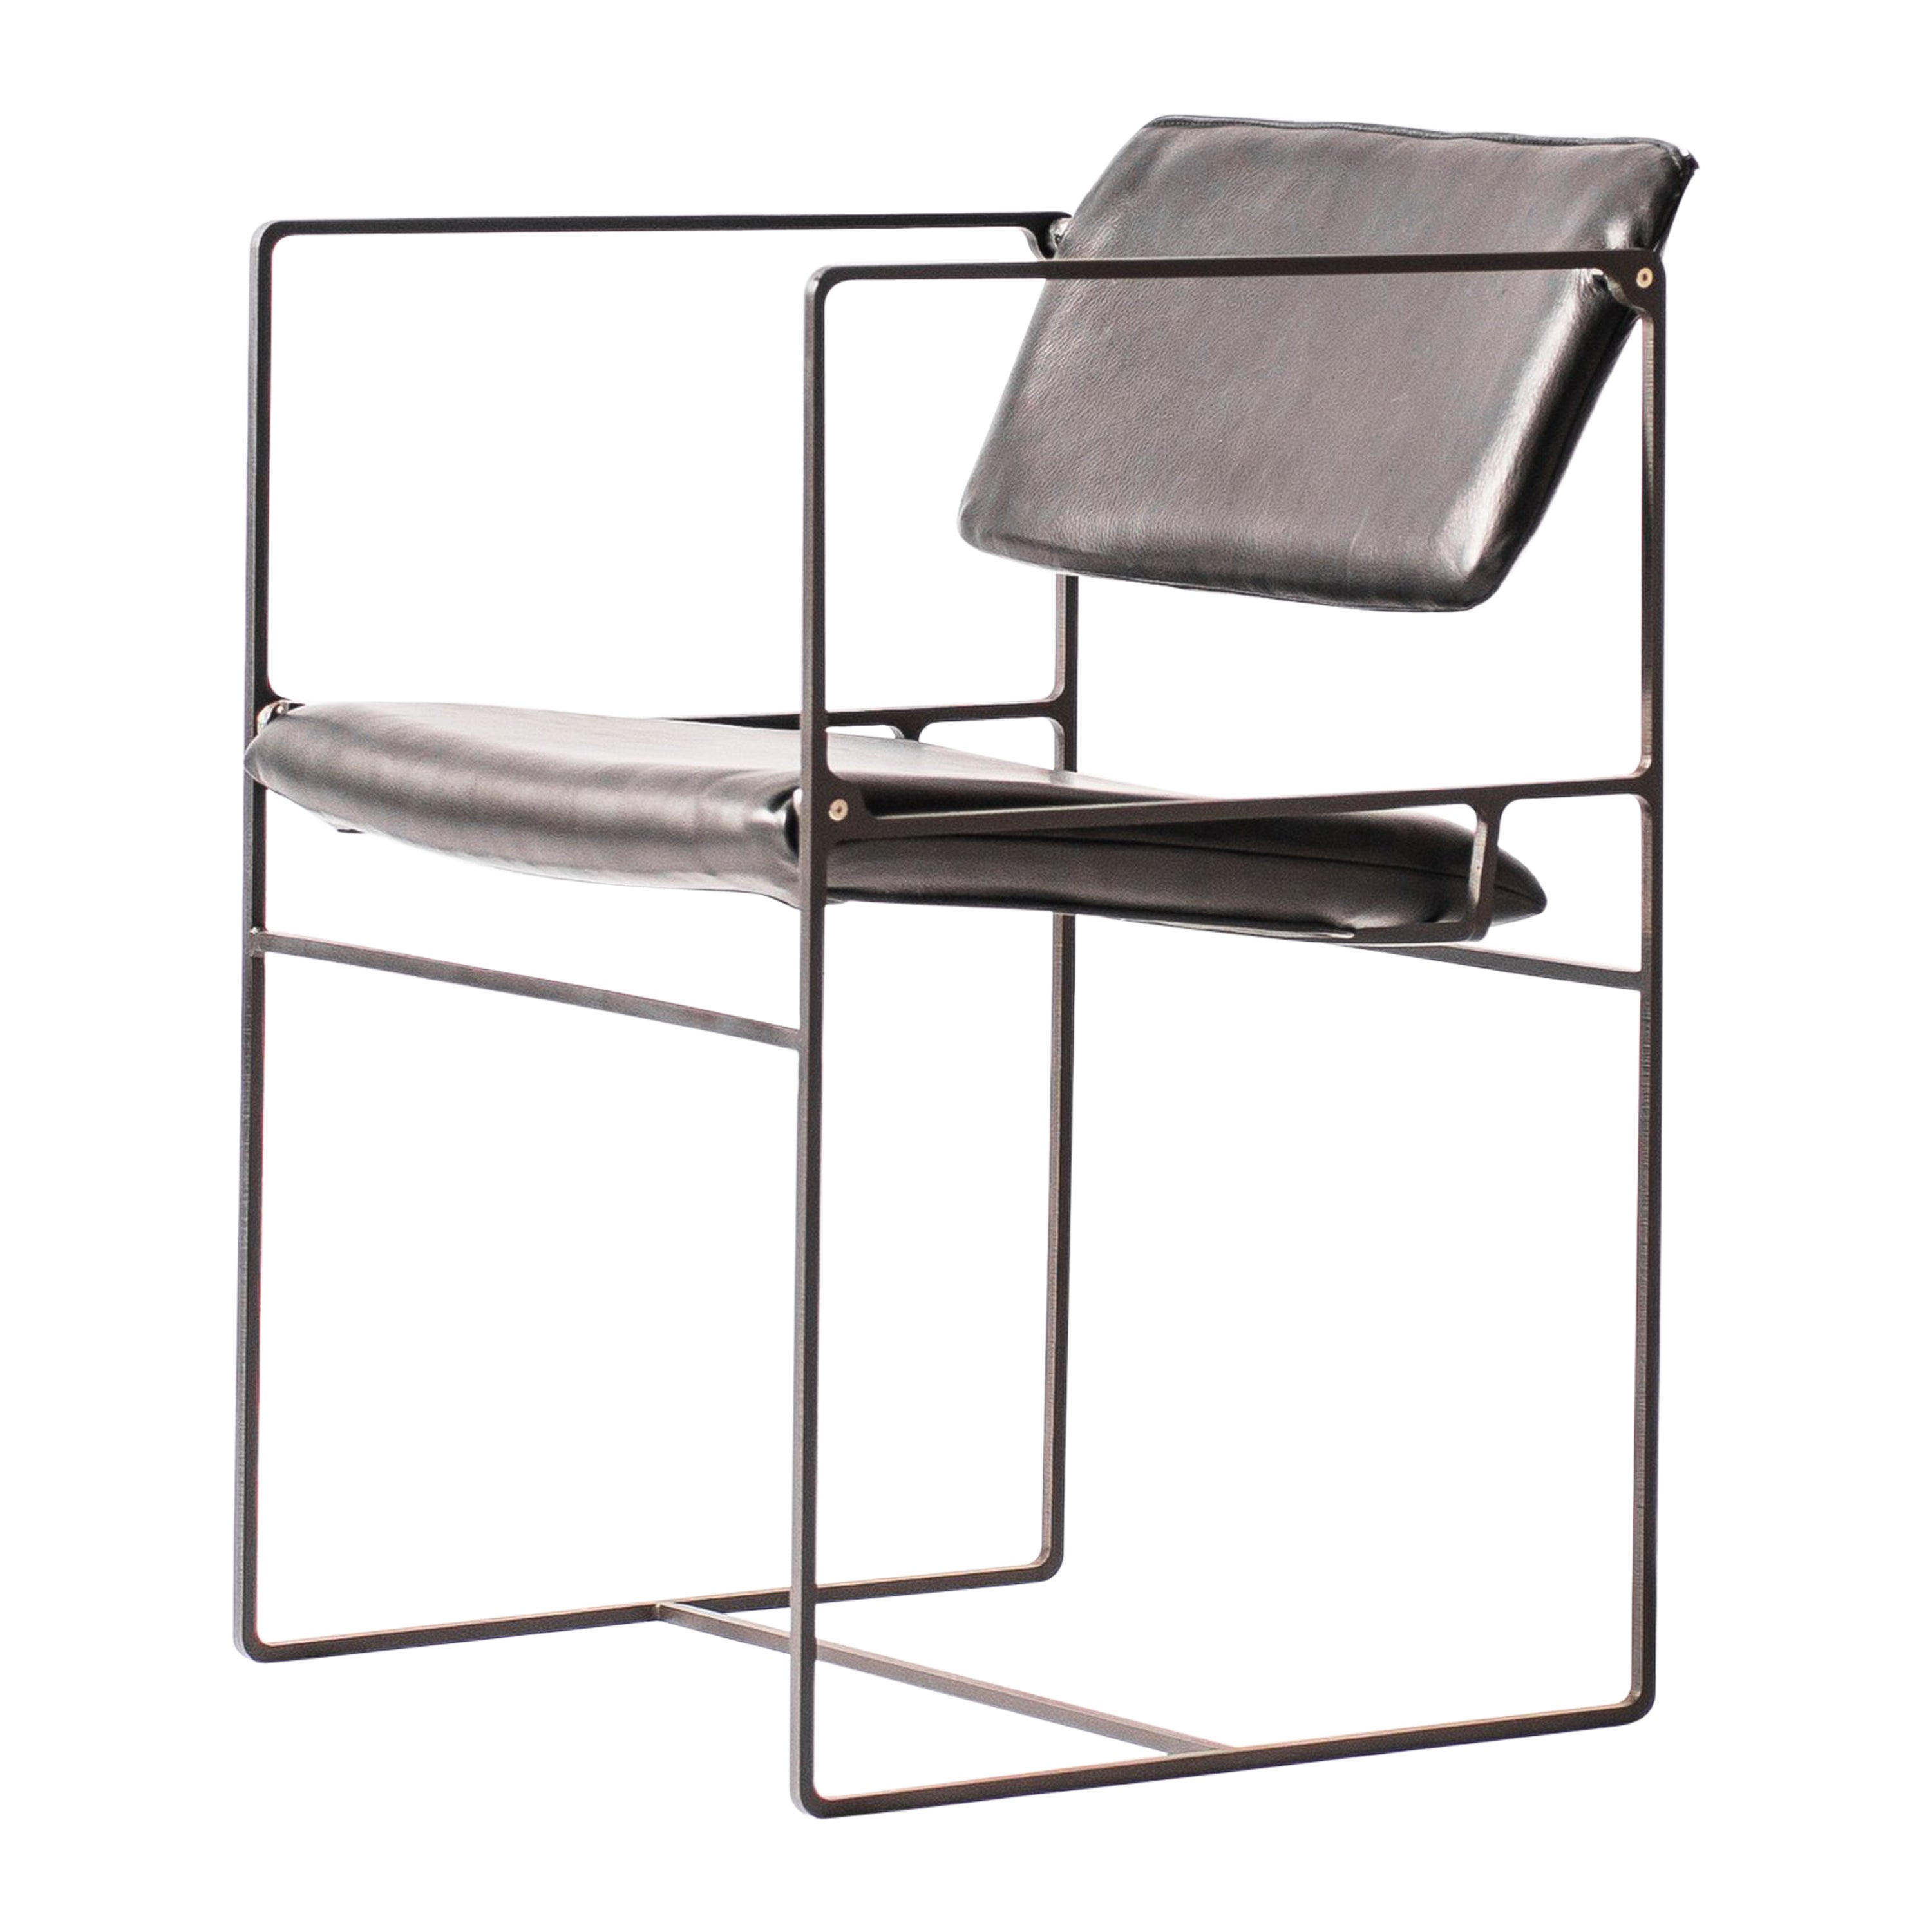 Lounge Pivot Chair in Laser-Cut Steel Frame and Leather Seat